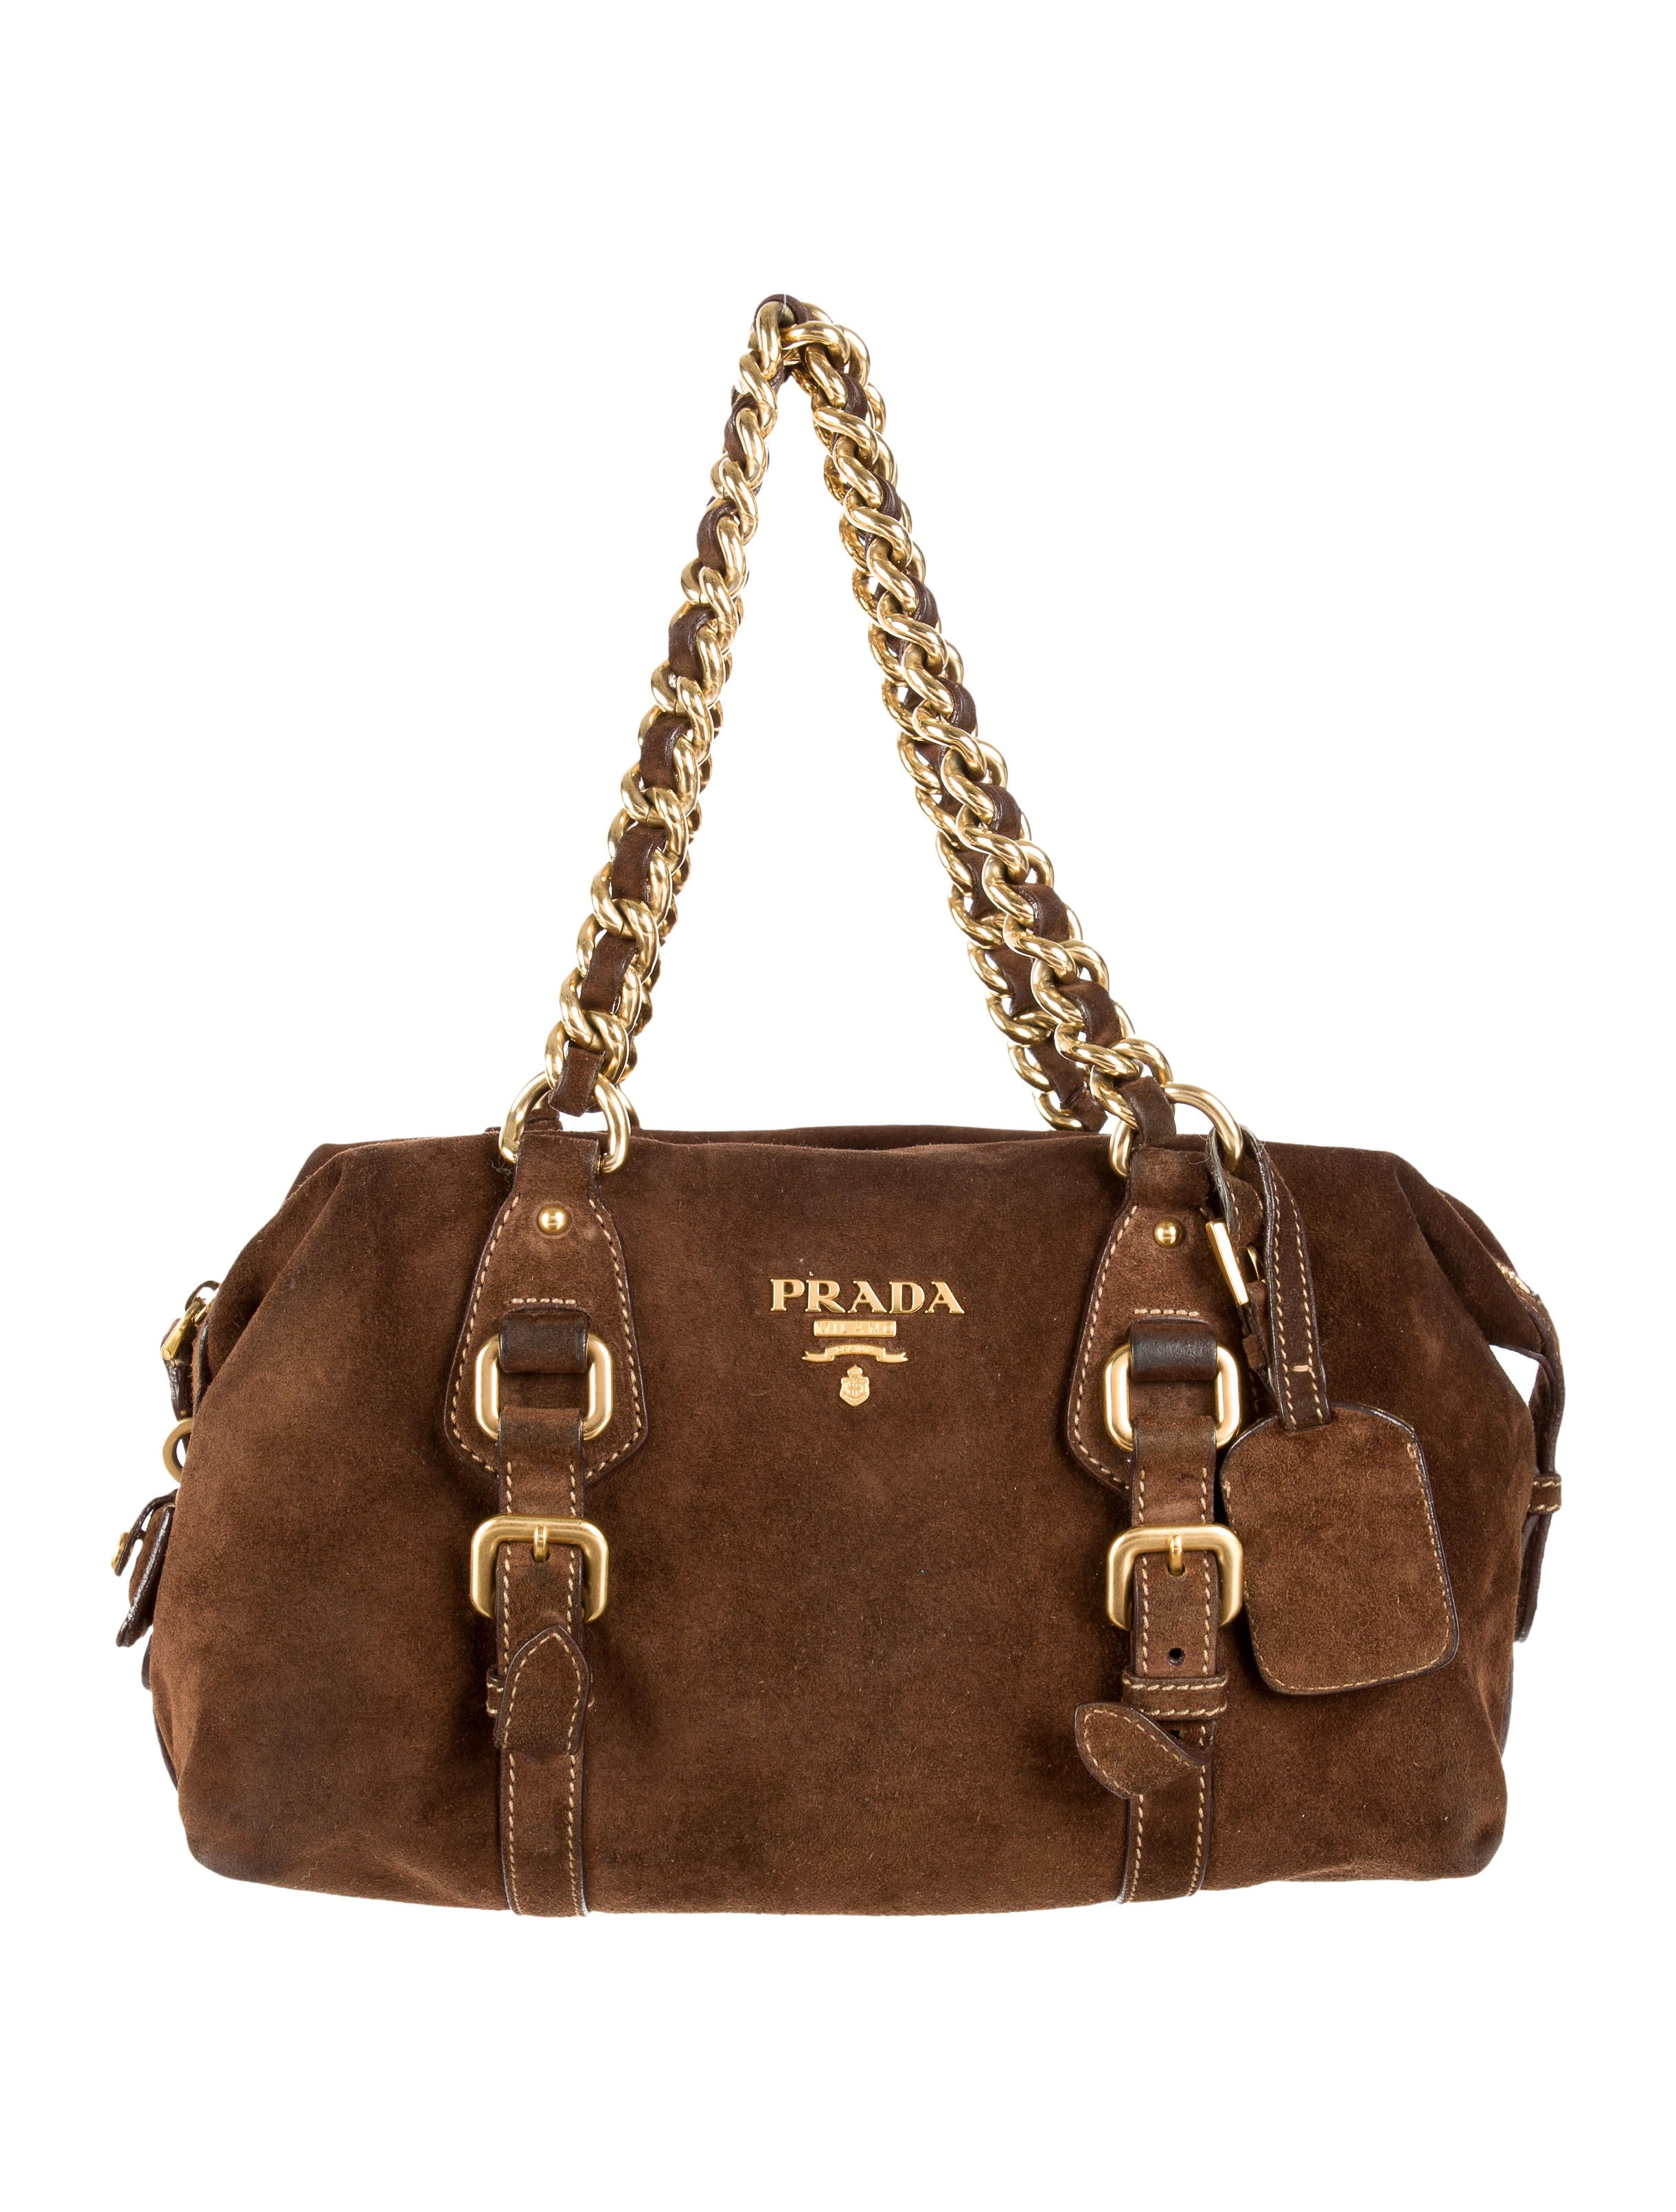 prada suede chain-link shoulder bag